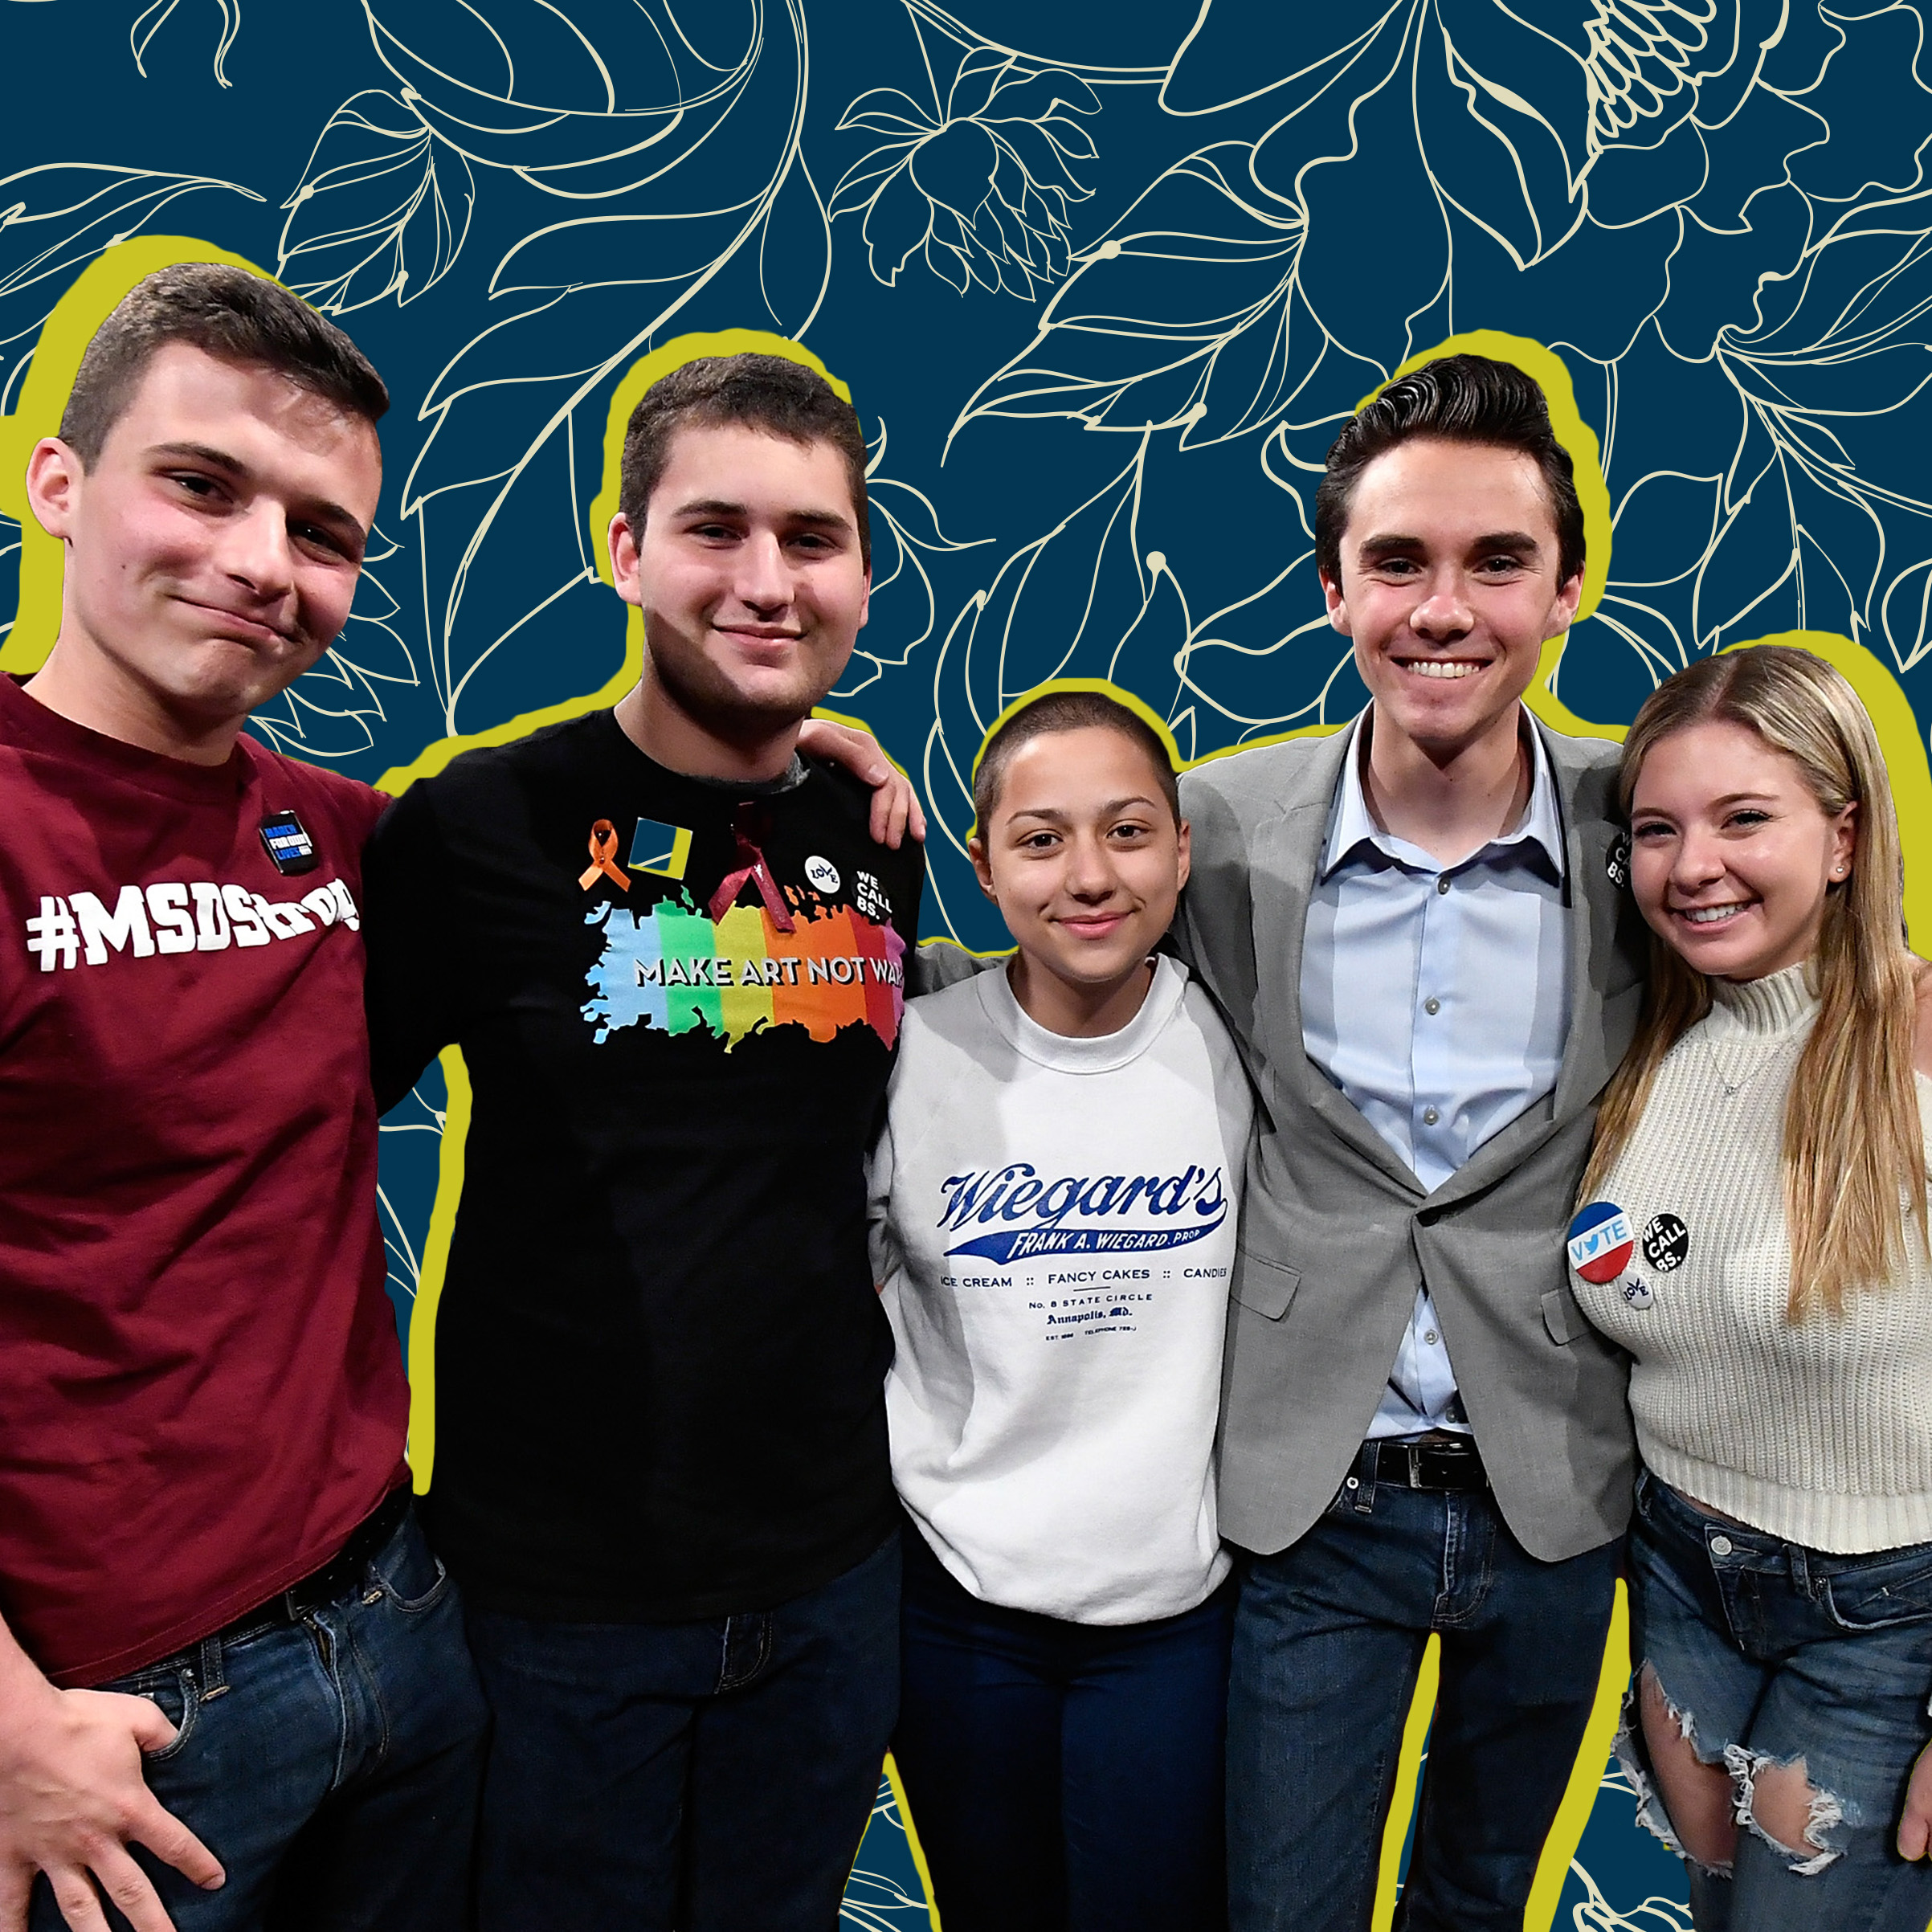 Parkland, Fla., Marjory Stoneman Douglas High School Students and activists (L-R) Cameron Kasky, Alex Wind, Emma Gonzalez, David Hogg, and Jaclyn Corin